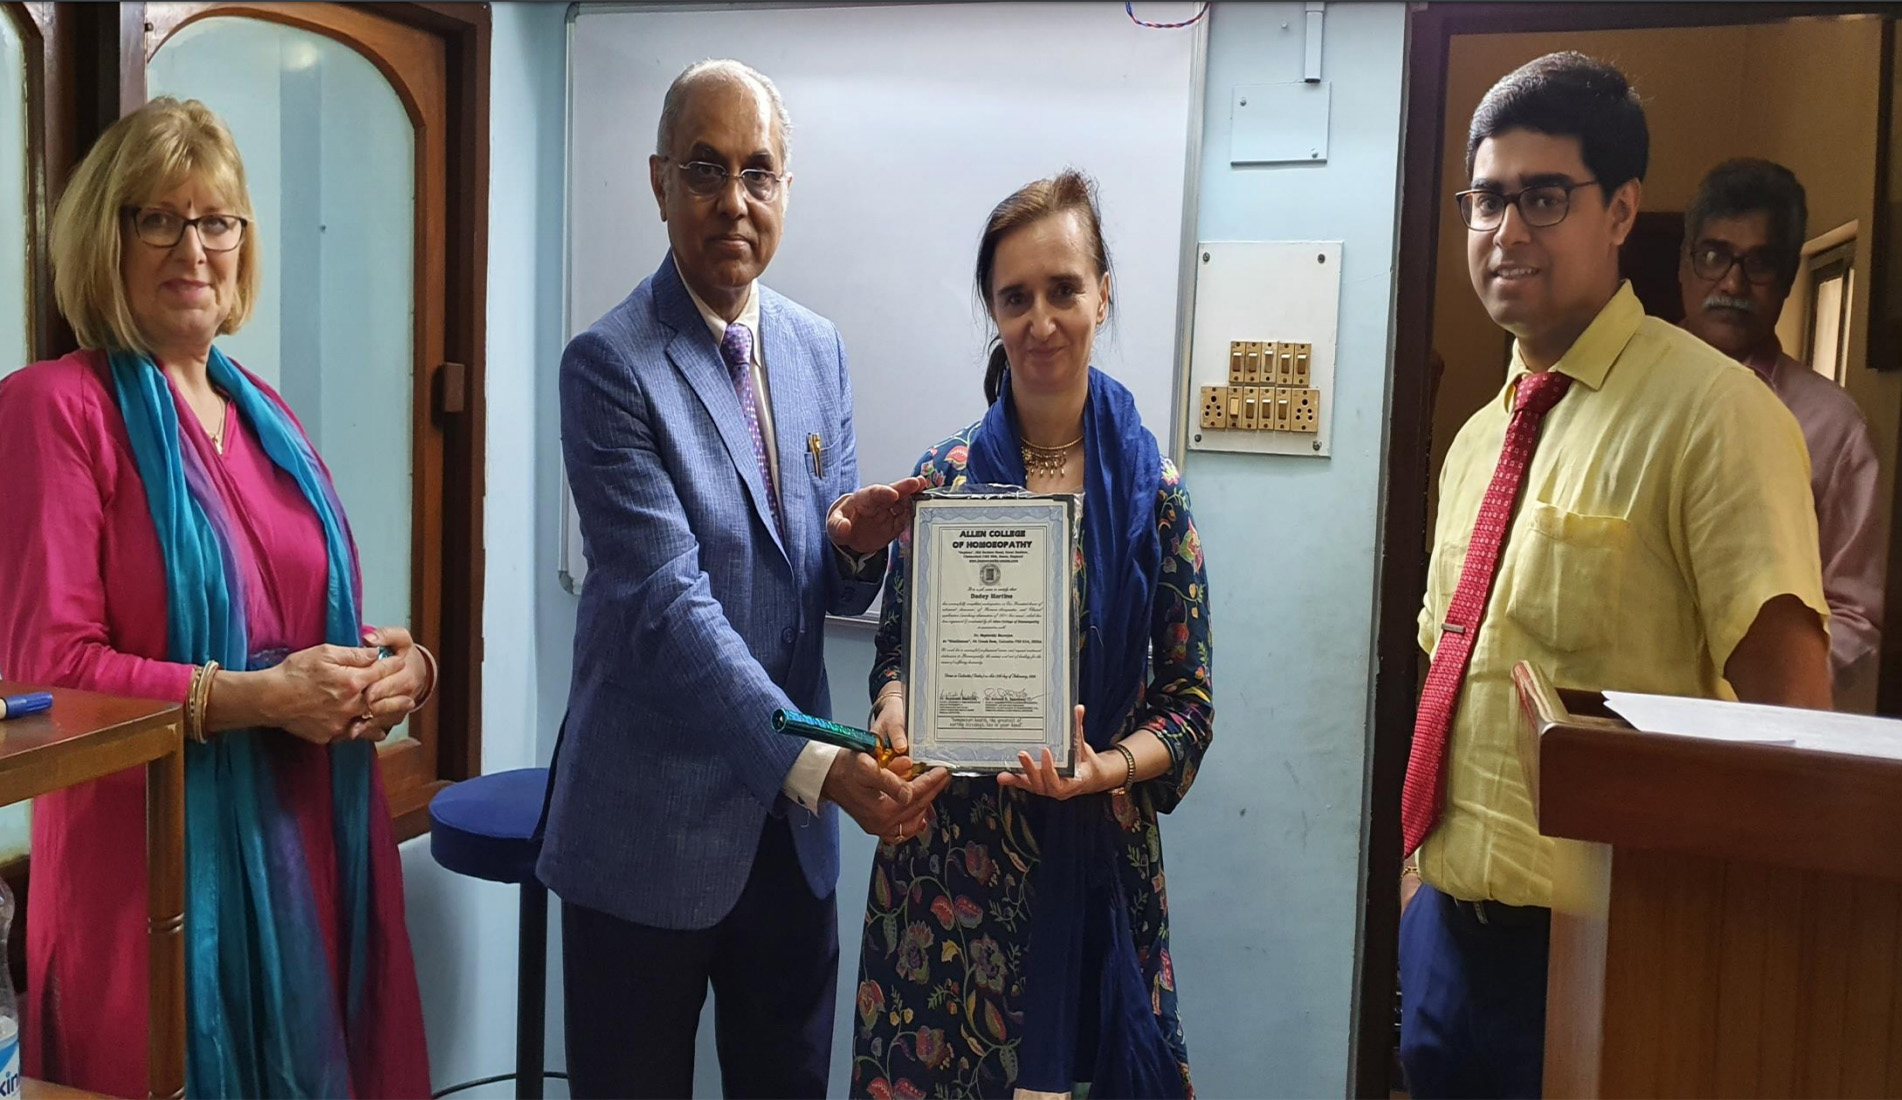 Martine from England, receiving her CPD Certificate